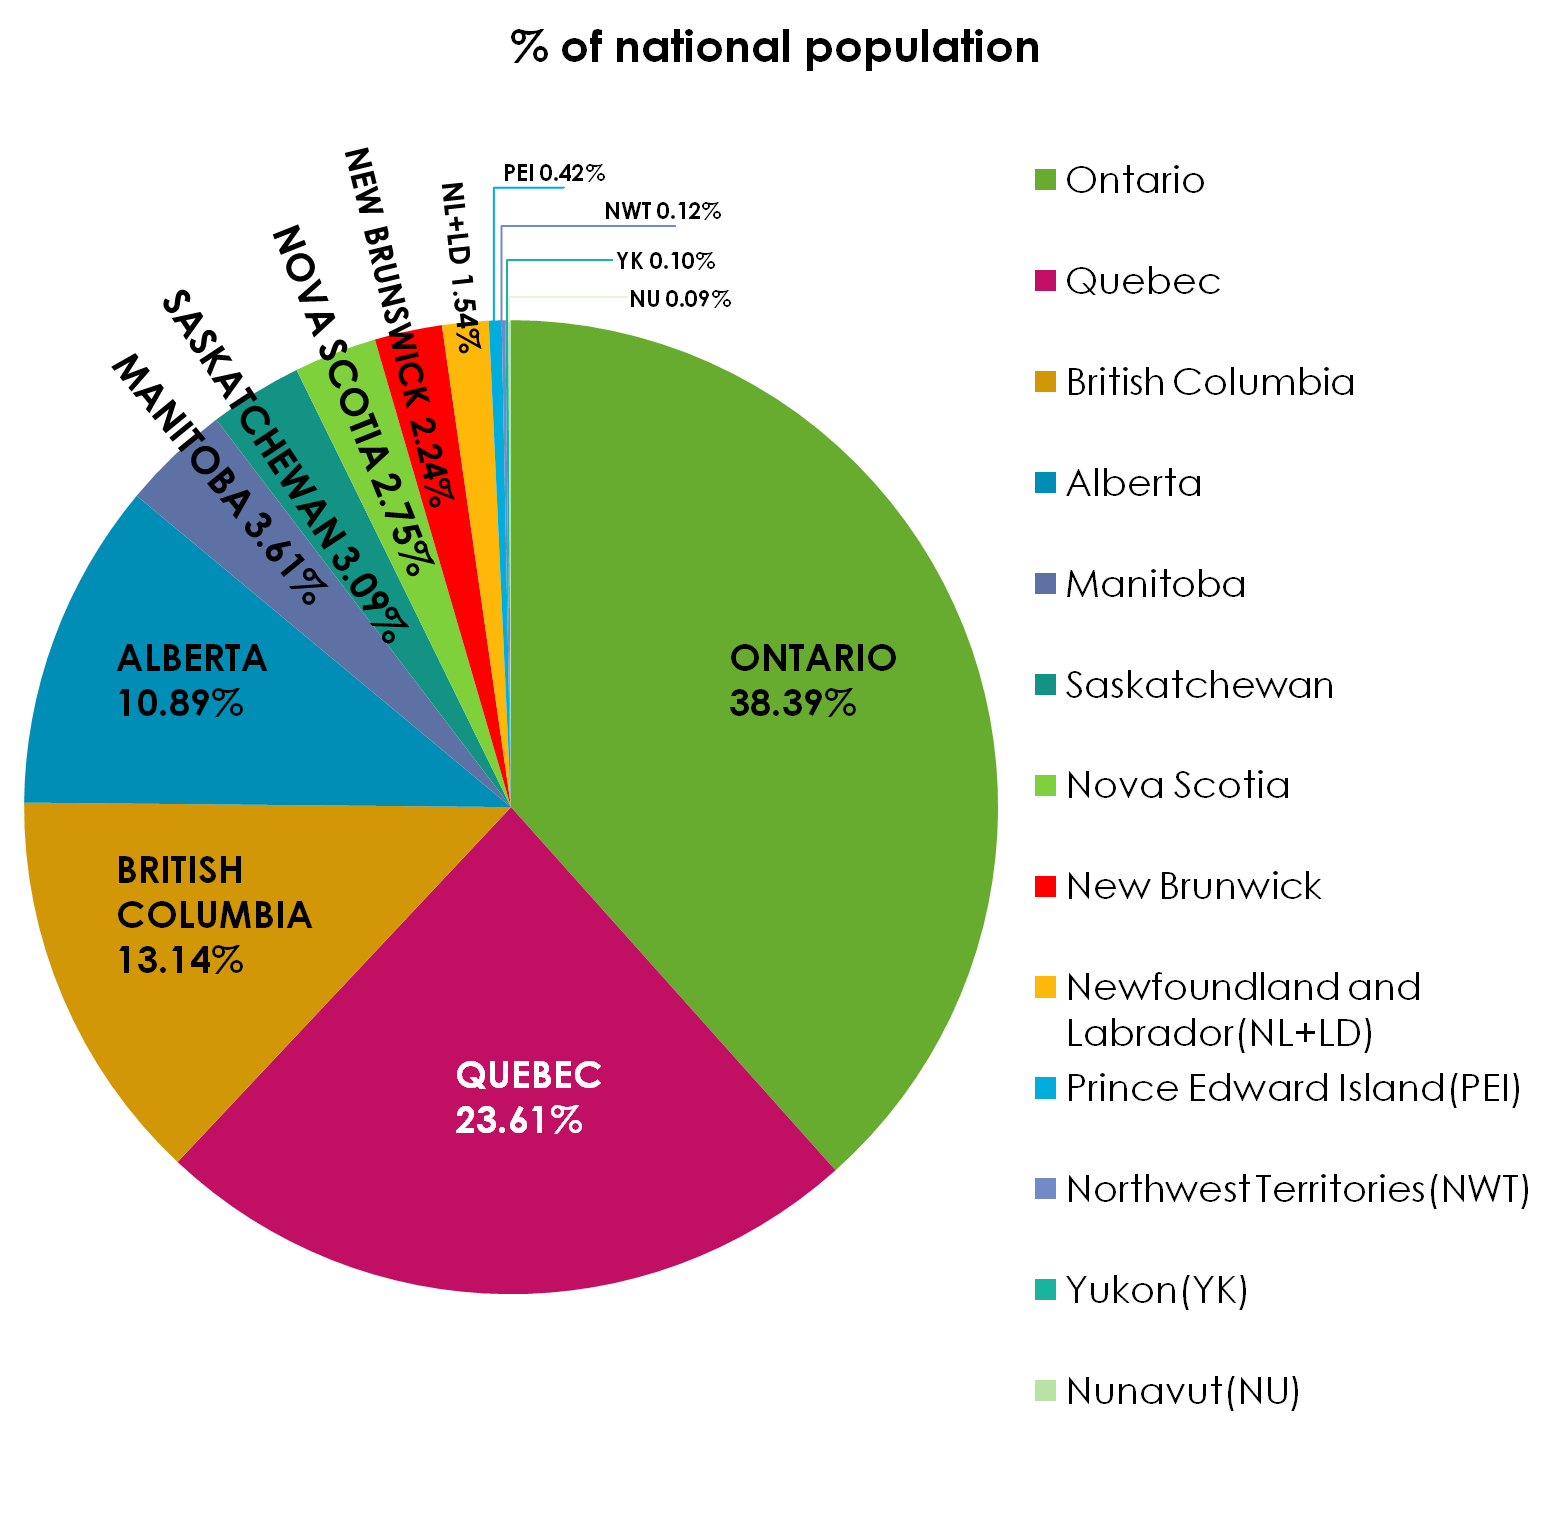 Pie Chart Is Another Way To Get Graphic Information